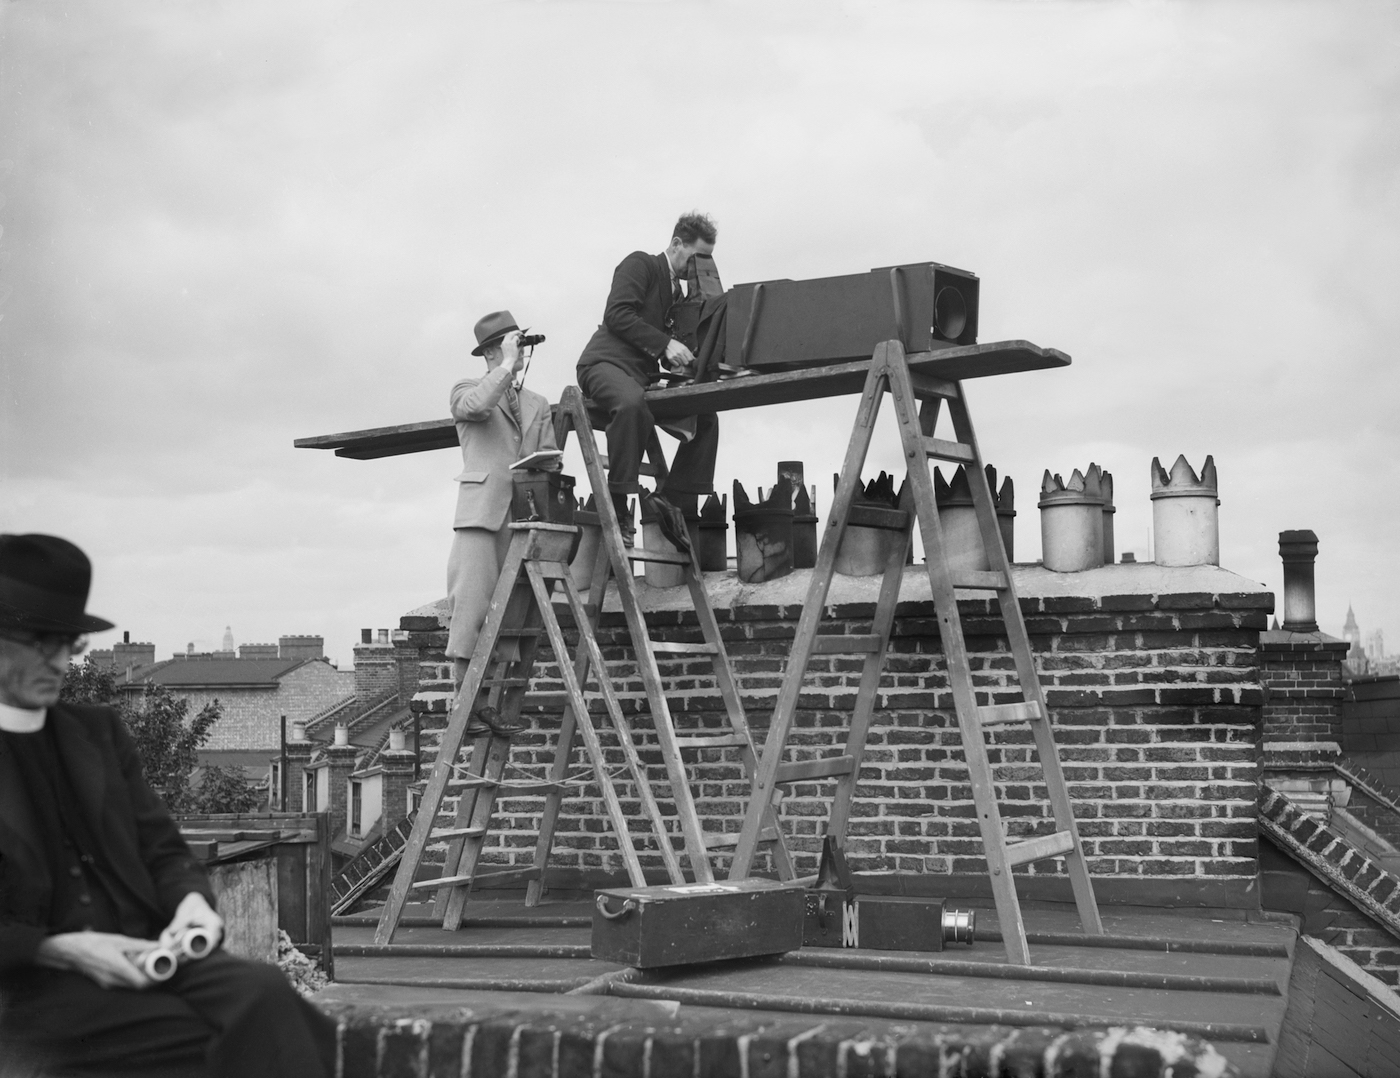 Fox Photos photographers use a long-focus lens mounted on a Graflex camera to capture the fifth Ashes Test at The Oval in 1938